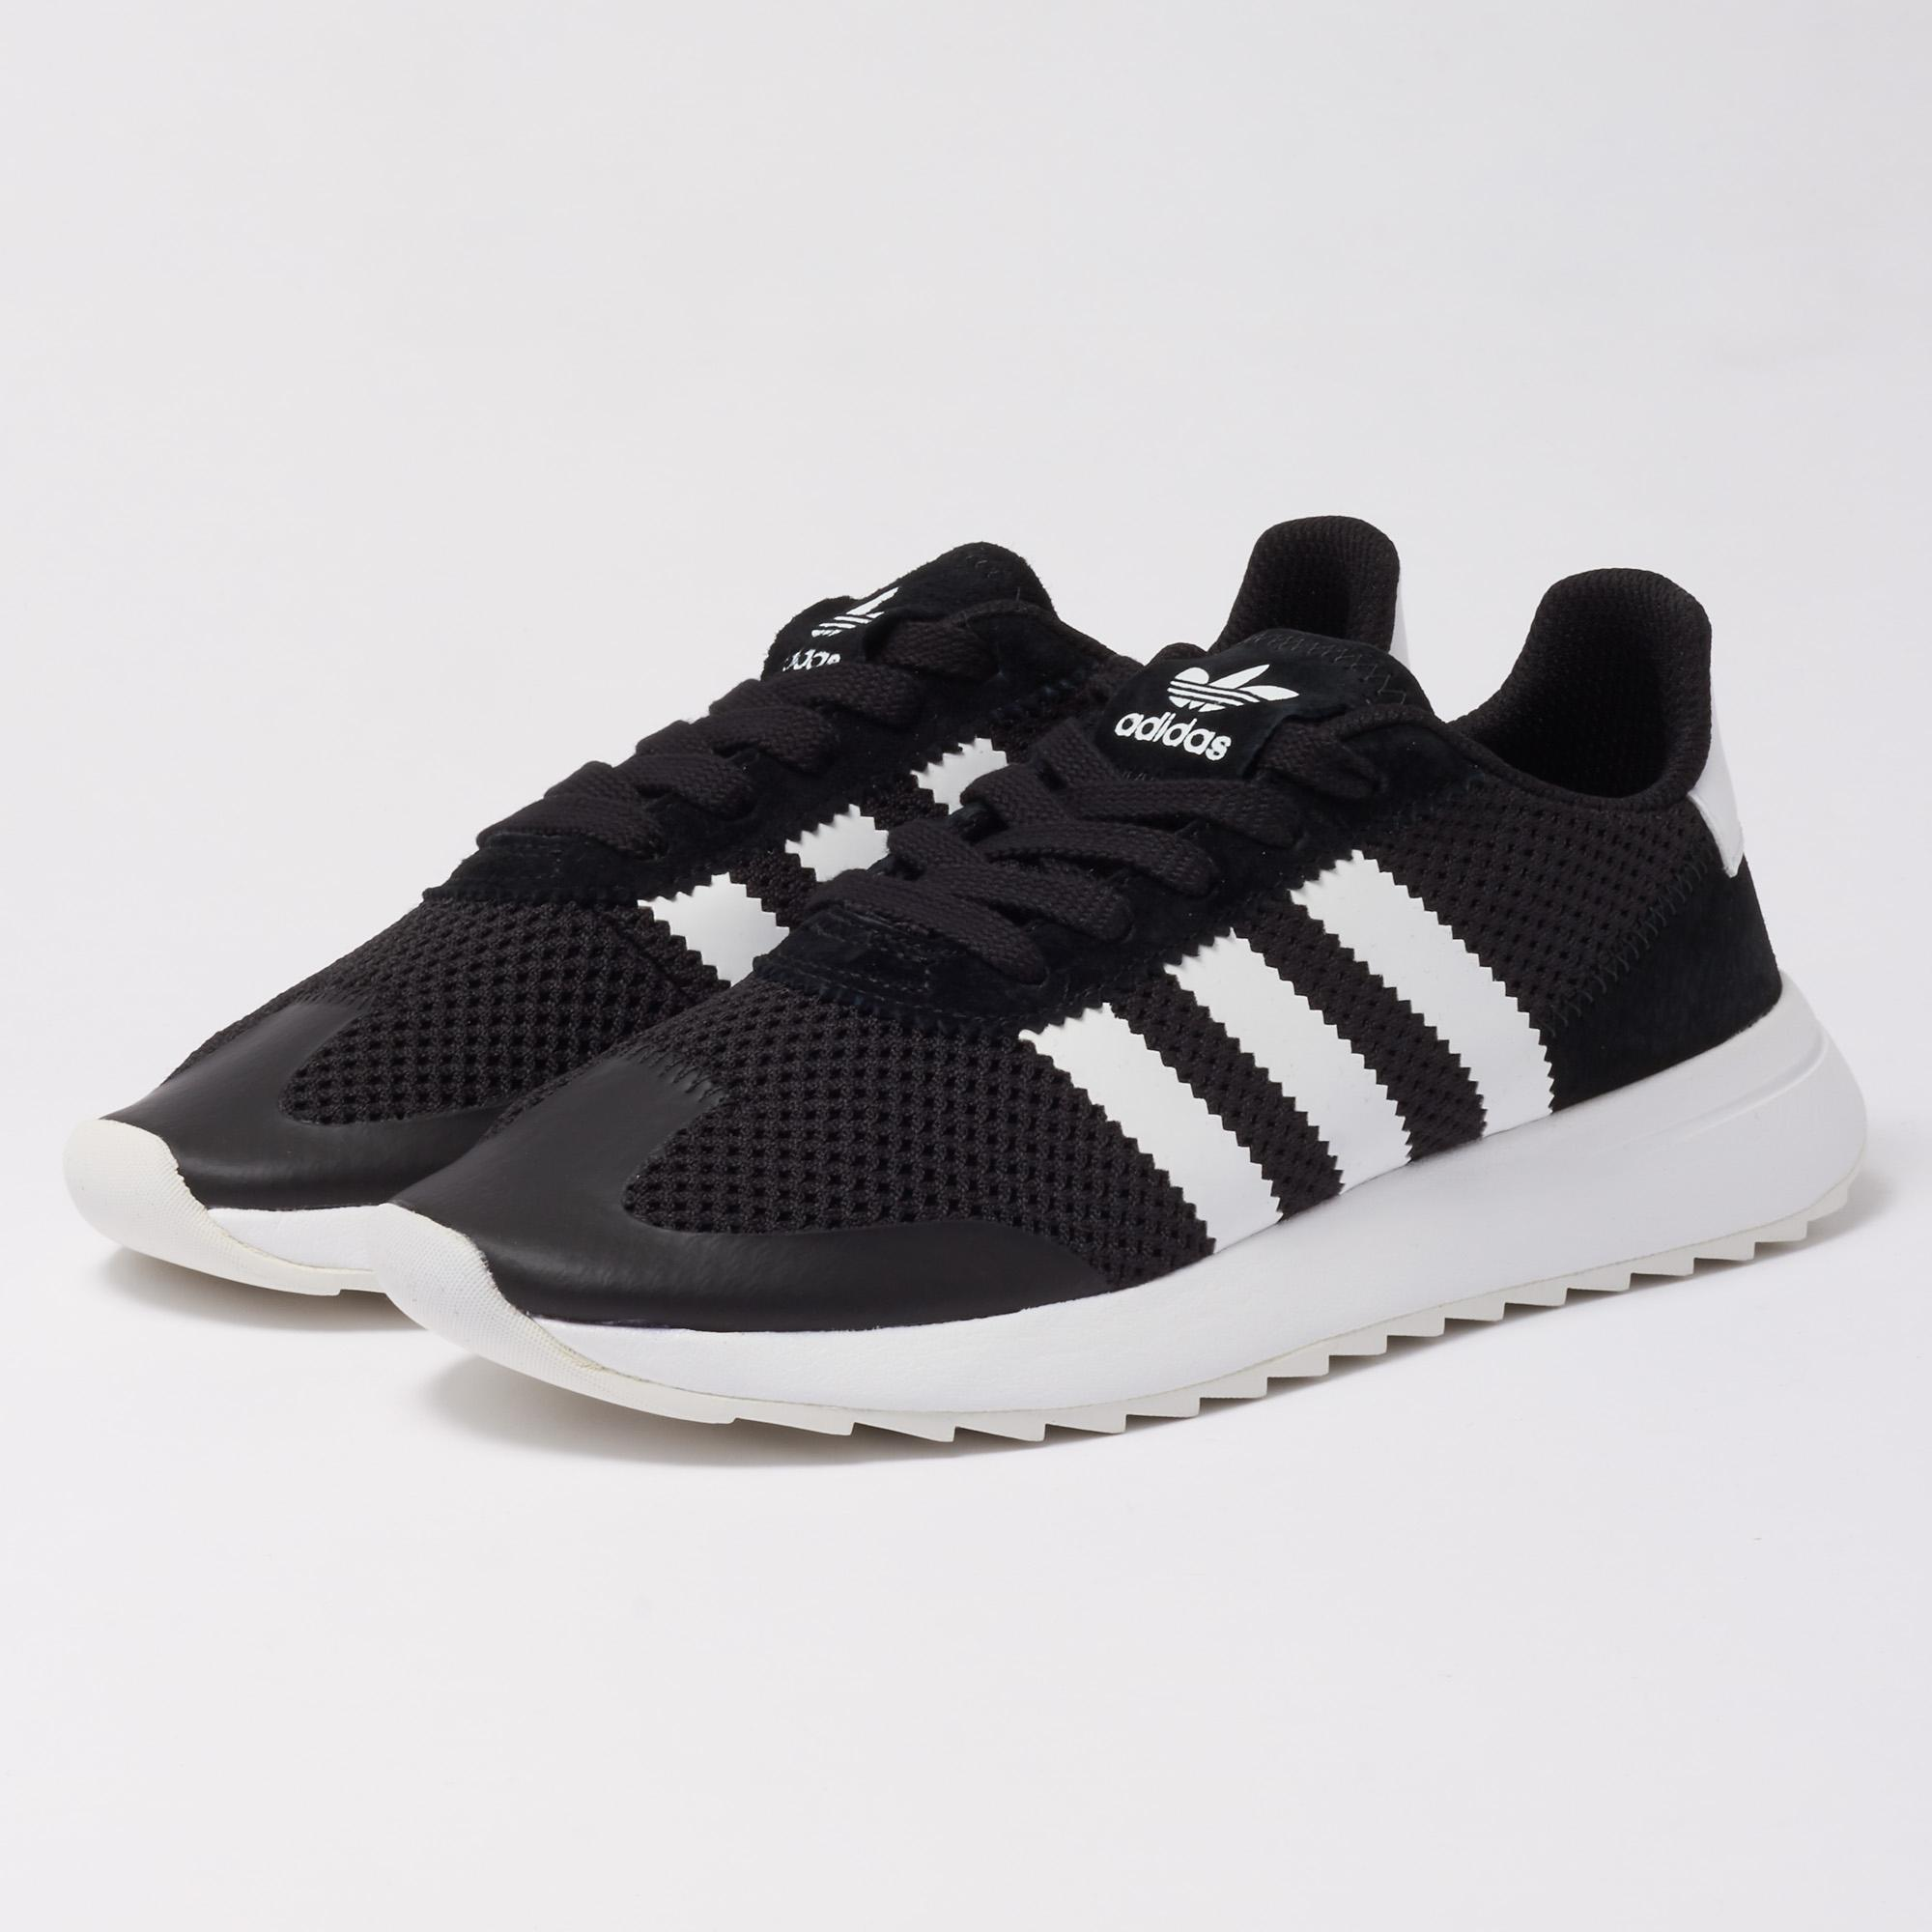 best sneakers 044a3 b629f Adidas Originals Wmns Flb Trainers - Core Black in Black for